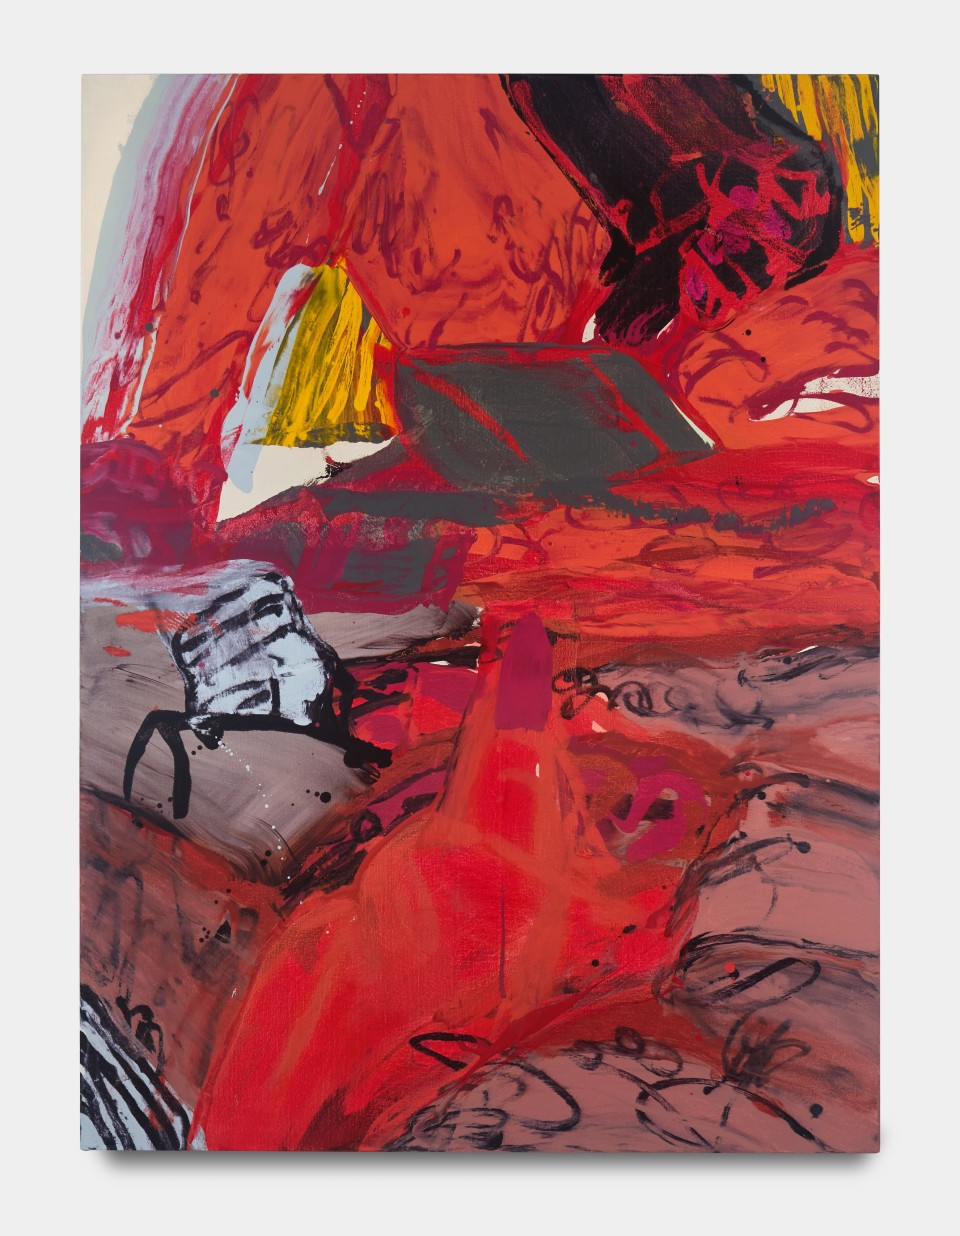 Image: Sarah Faux  Him I don't remember, 2020  signed and dated verso  oil on canvas  62 x 46 inches (157.5 x 116.8 cm)